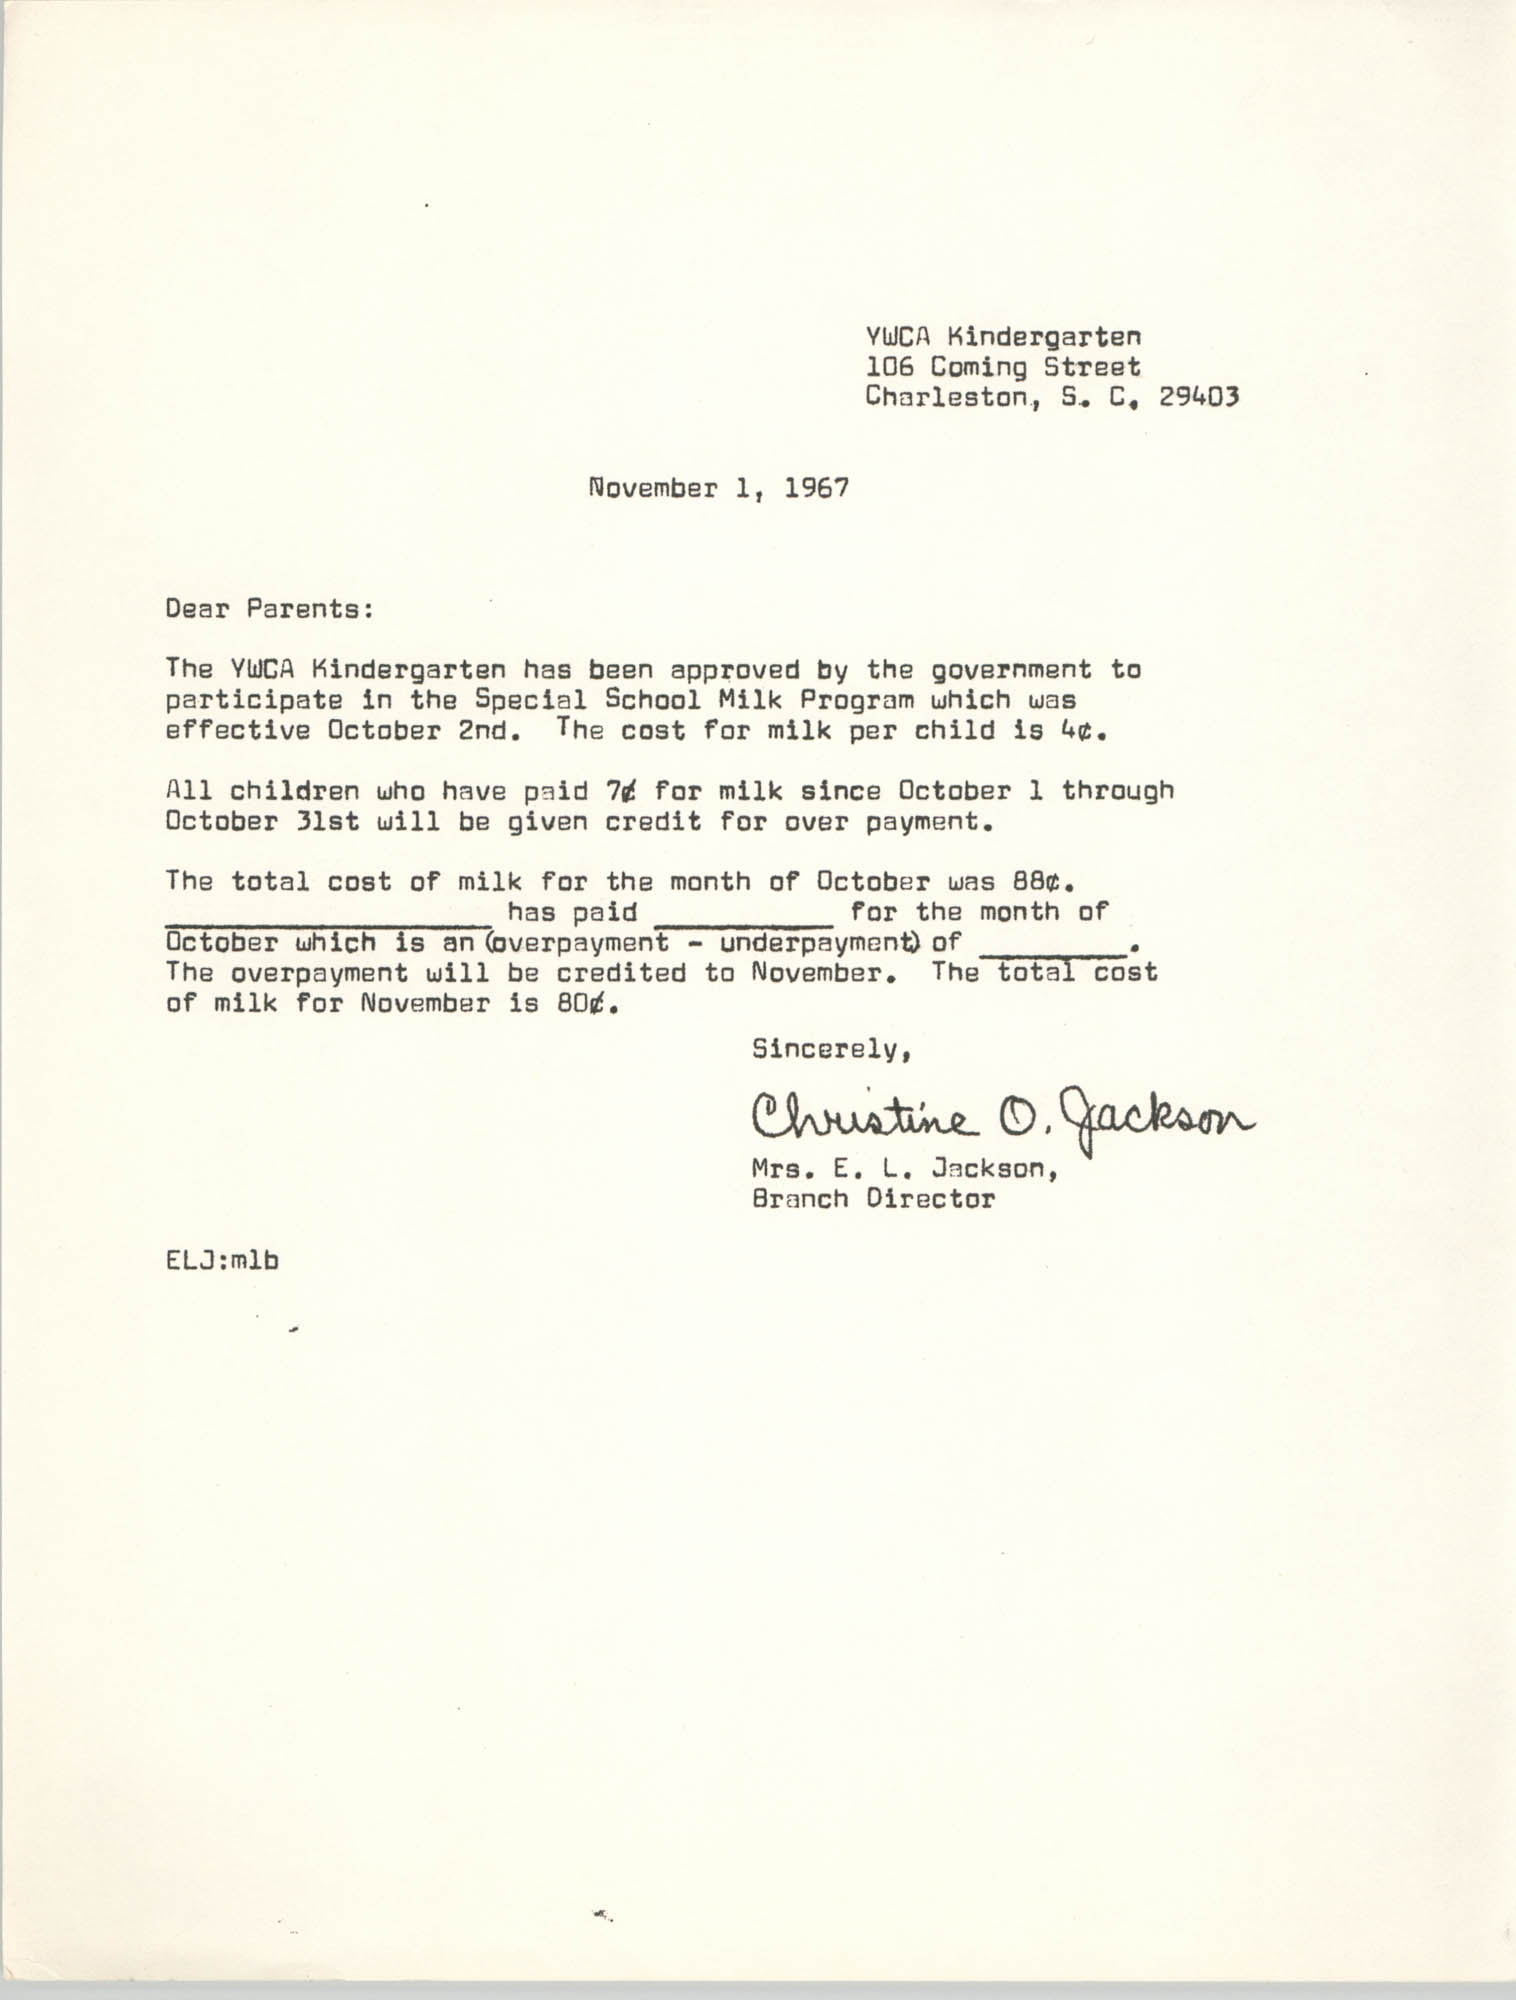 Letter from Christine O. Jackson to Parents, November 1, 1967